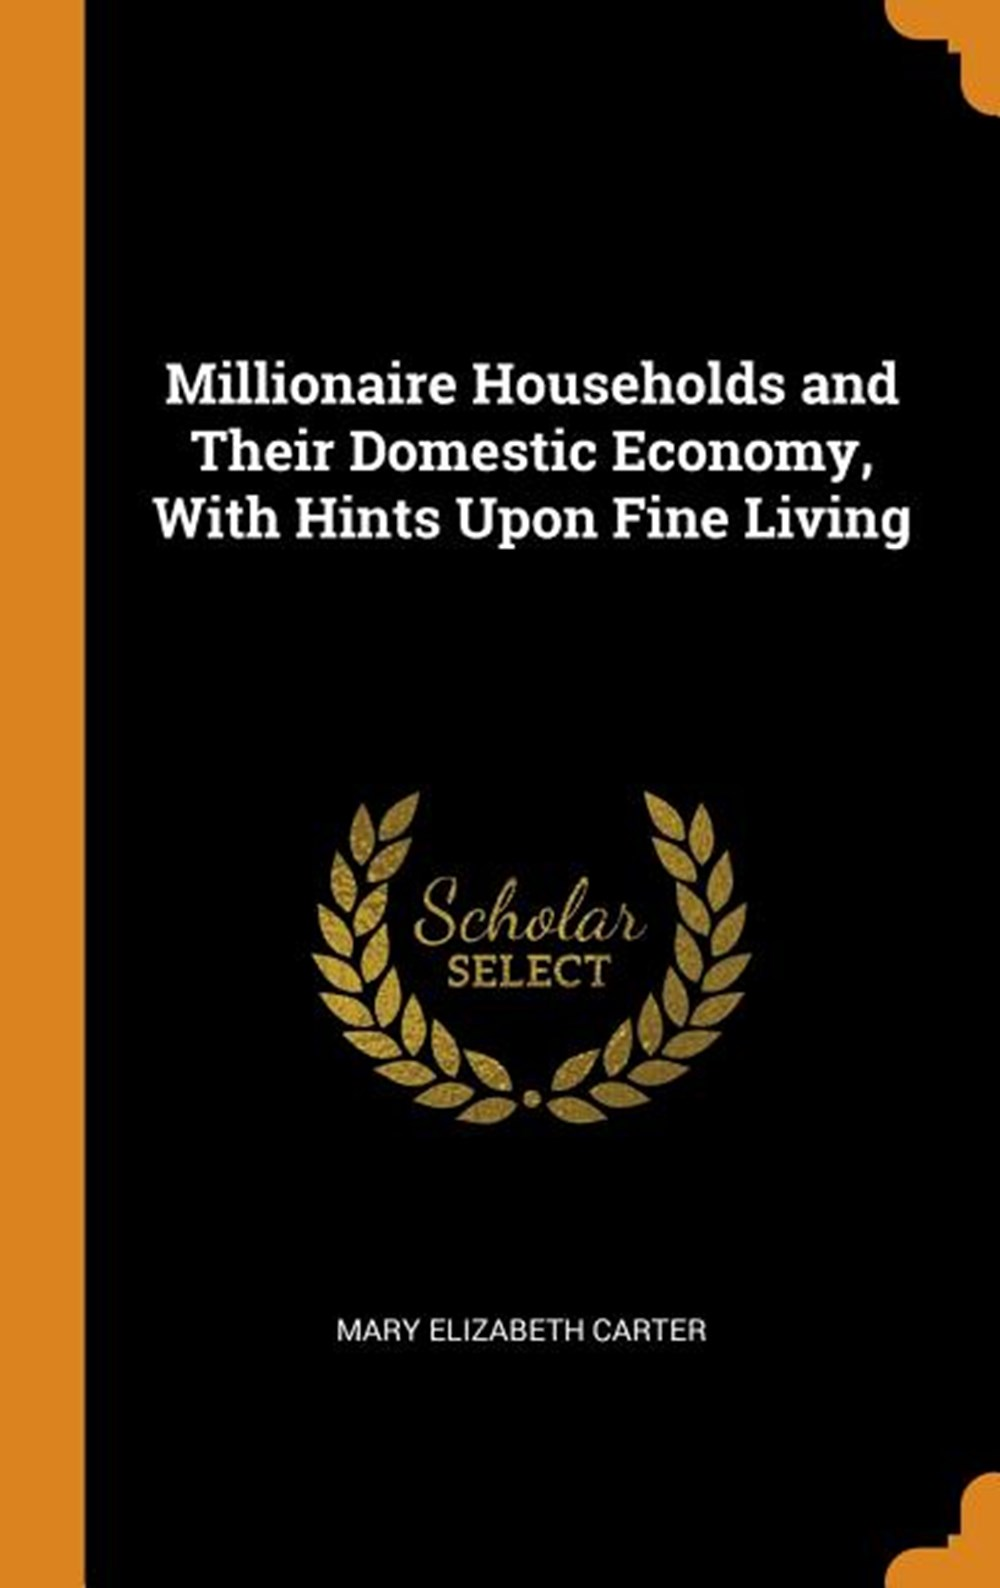 Millionaire Households and Their Domestic Economy, with Hints Upon Fine Living